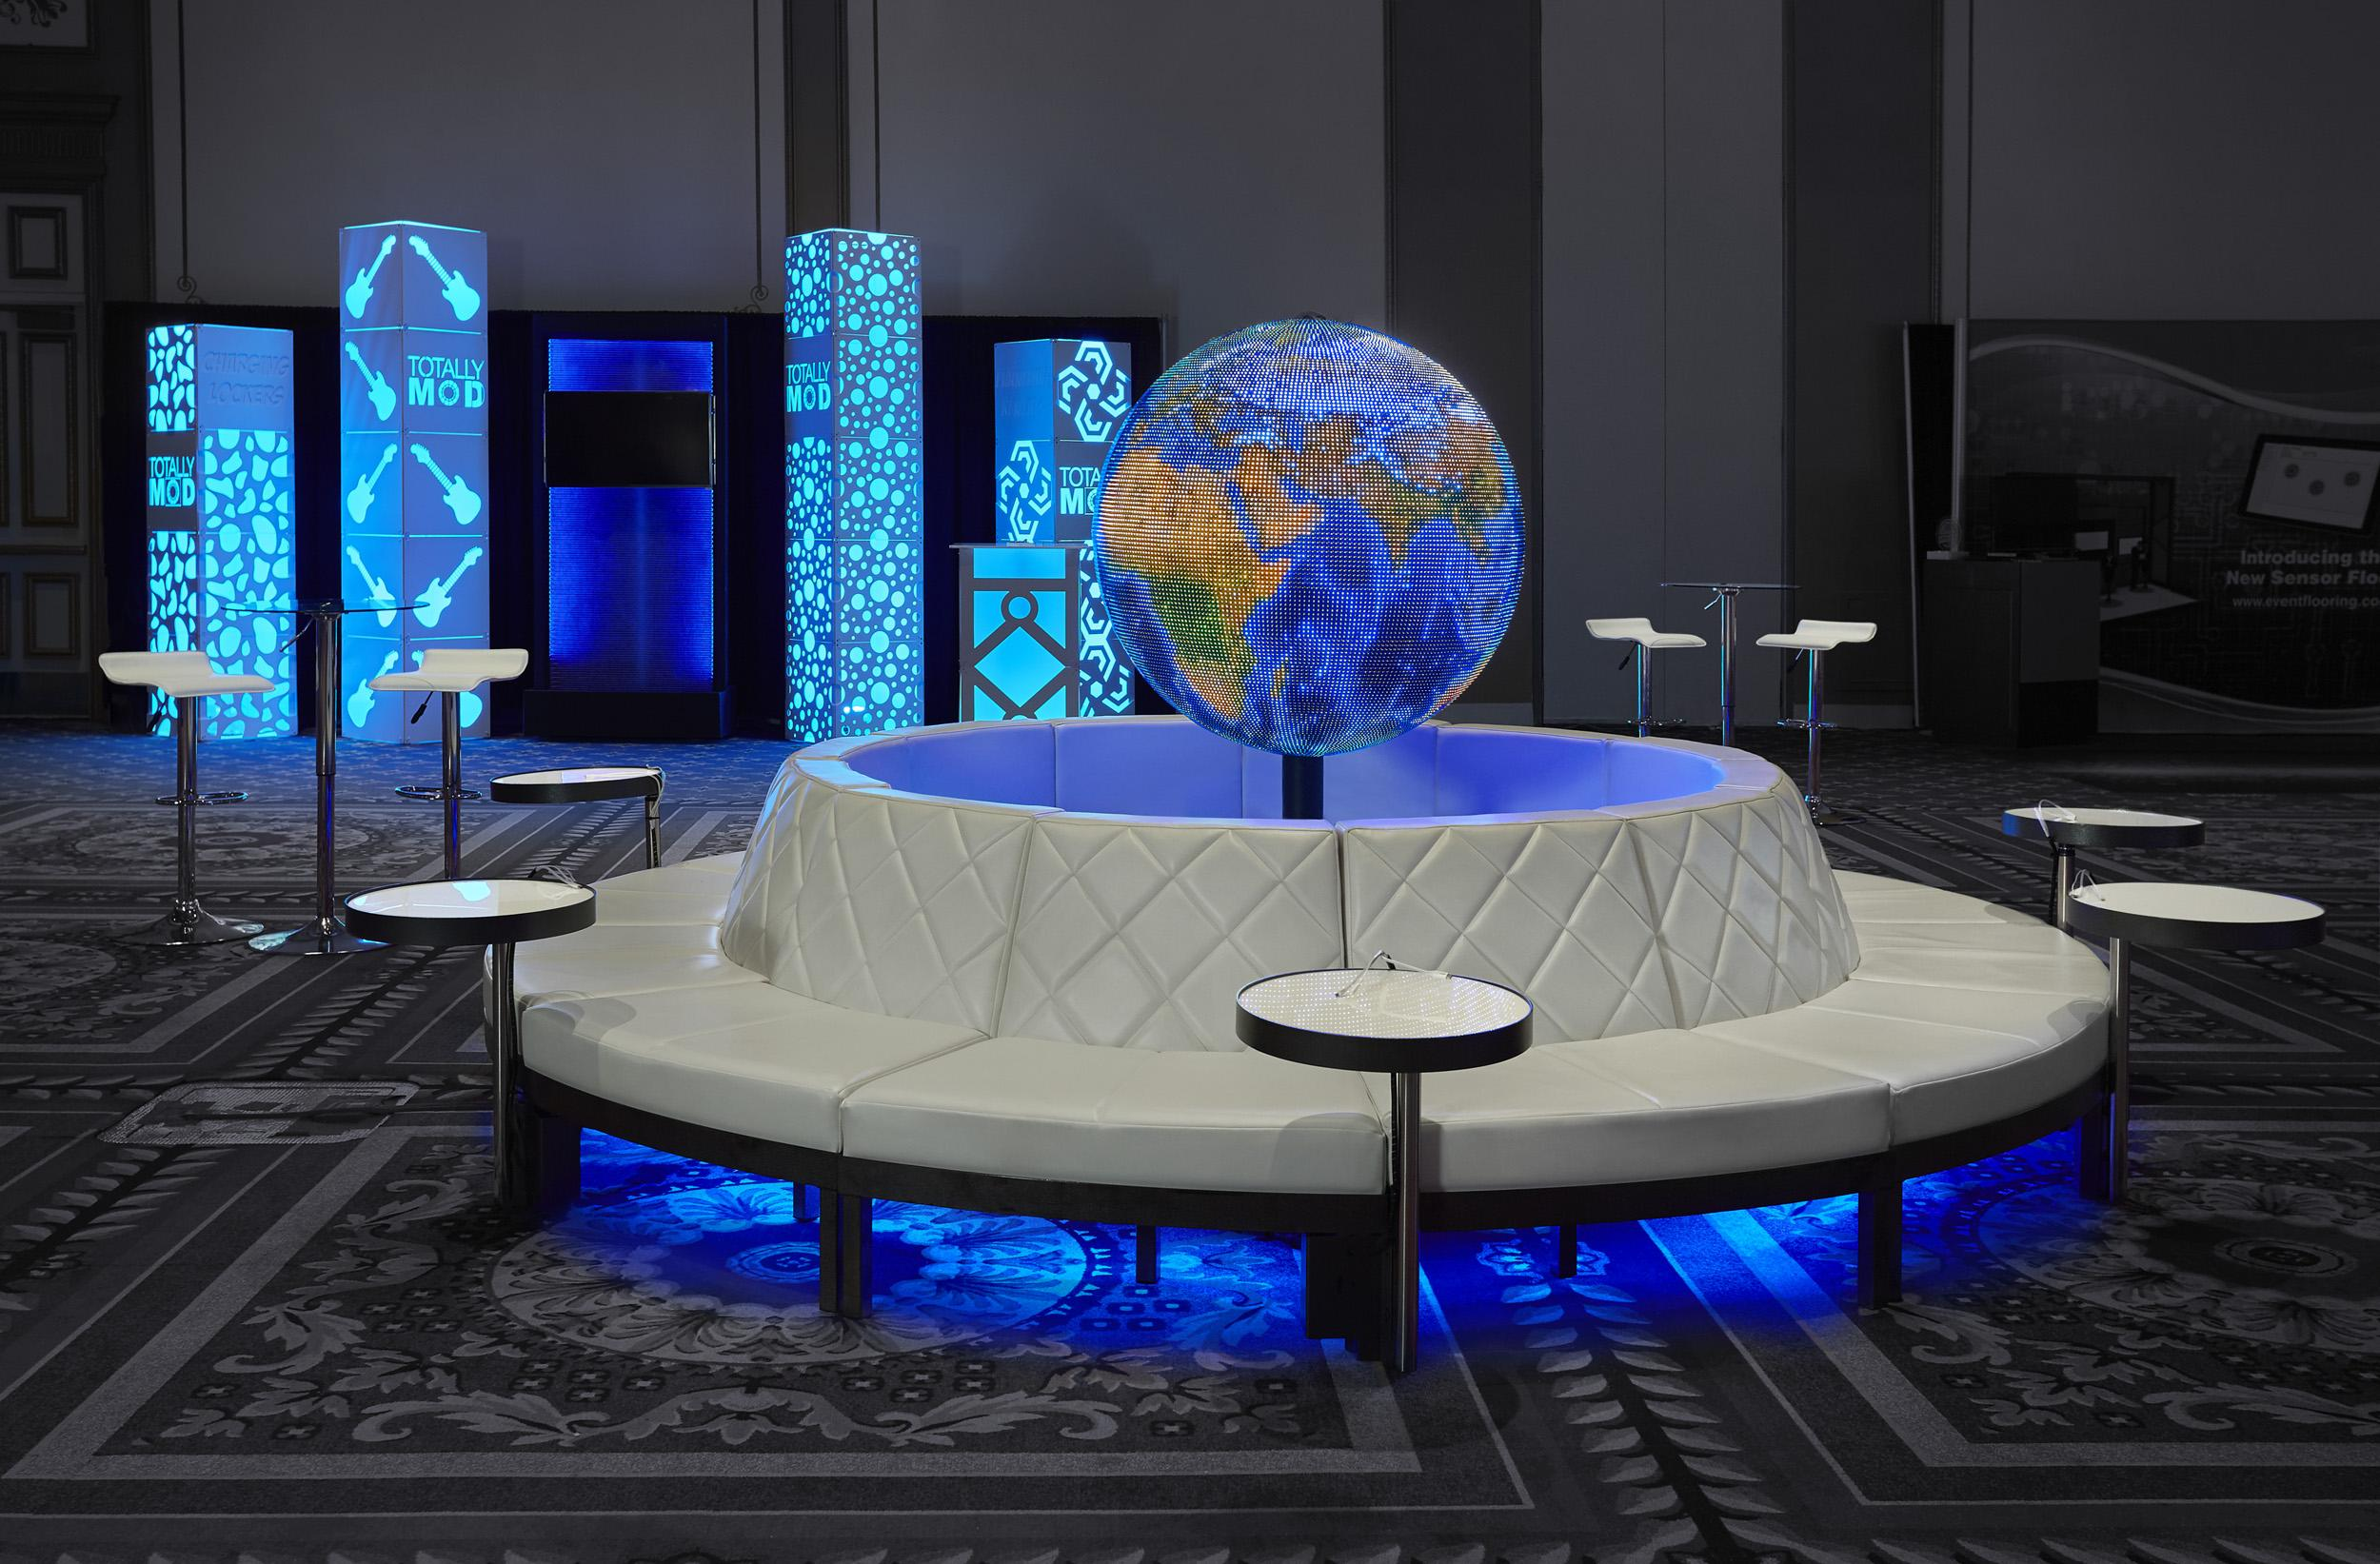 Quest-Events-Totally-Mod-Corporate-Special-Events-Scenic-Design-Lounge-Hotel-Convention-Conference-Furnishings-Leather-Soft-Seating-Tables-Style-Tyles